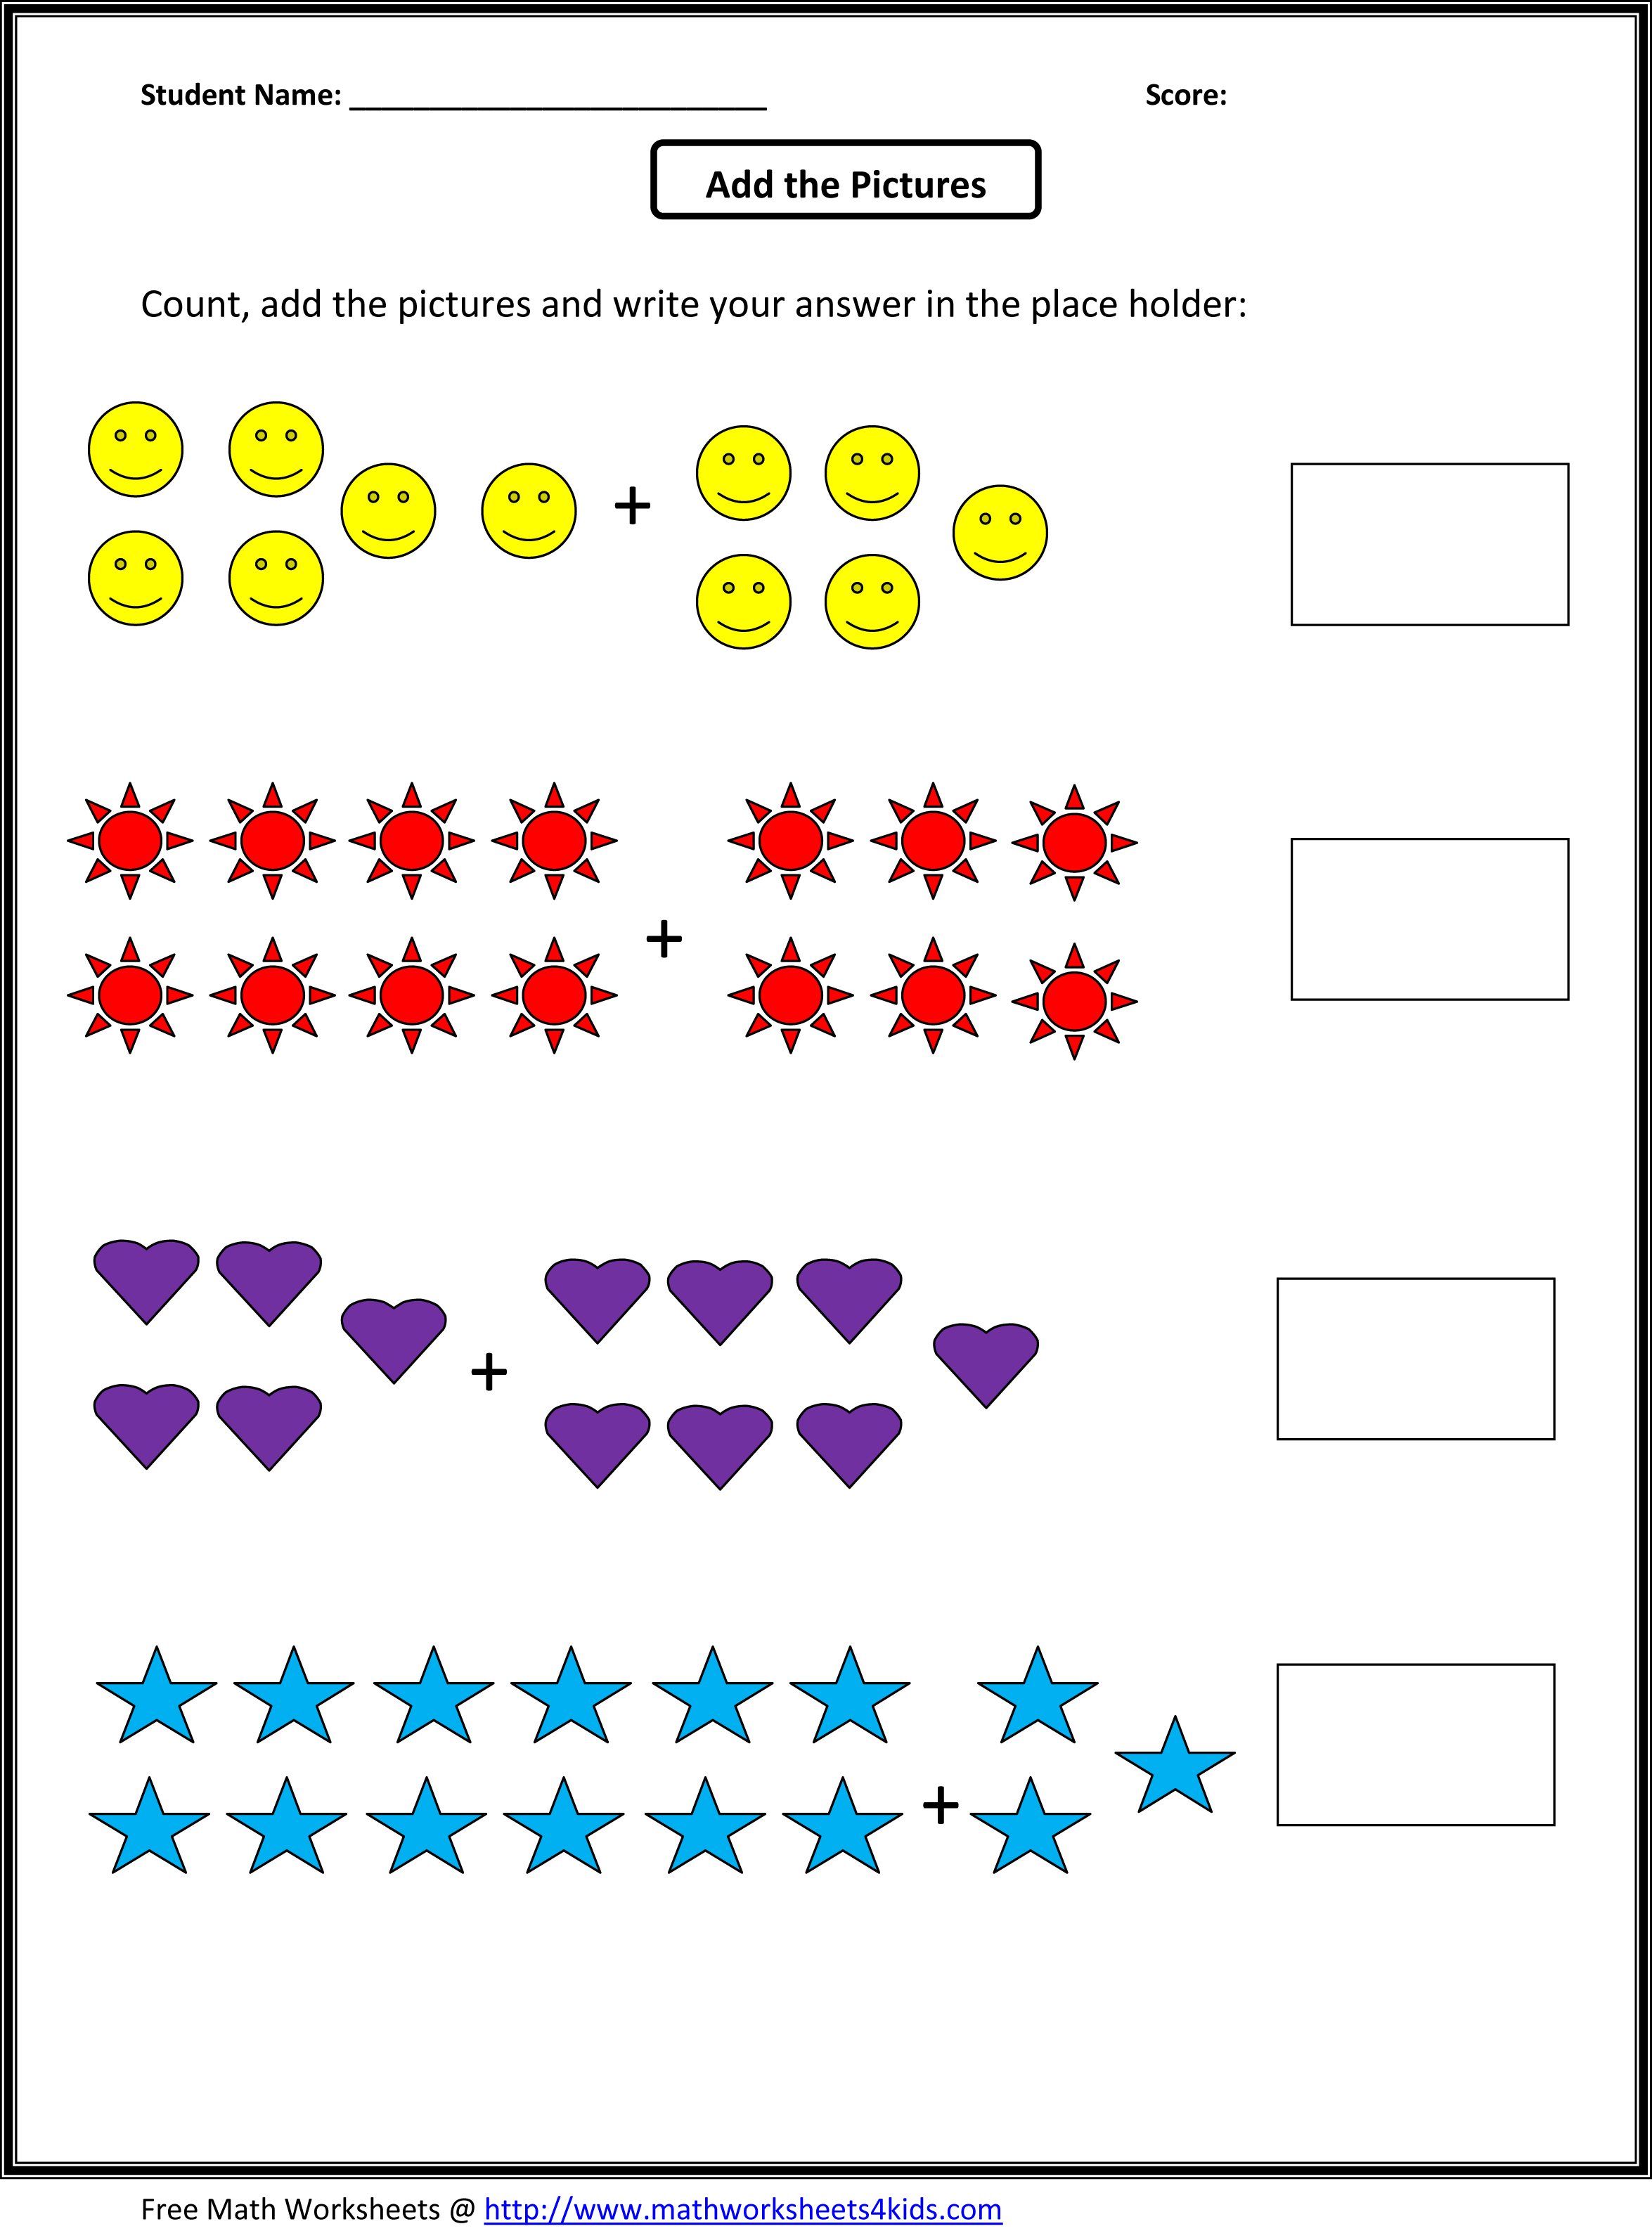 Weirdmailus  Scenic Grade  Maths Worksheet  Reocurent With Hot Math Worksheets For St Grade Free  Reocurent With Delectable T Account Worksheet Also Free Dividing Fractions Worksheets In Addition Simple Science Worksheets And Cut And Paste Sentence Worksheets As Well As Genres Of Literature Worksheets Additionally Breaking Words Into Syllables Worksheets From Reocurentcom With Weirdmailus  Hot Grade  Maths Worksheet  Reocurent With Delectable Math Worksheets For St Grade Free  Reocurent And Scenic T Account Worksheet Also Free Dividing Fractions Worksheets In Addition Simple Science Worksheets From Reocurentcom